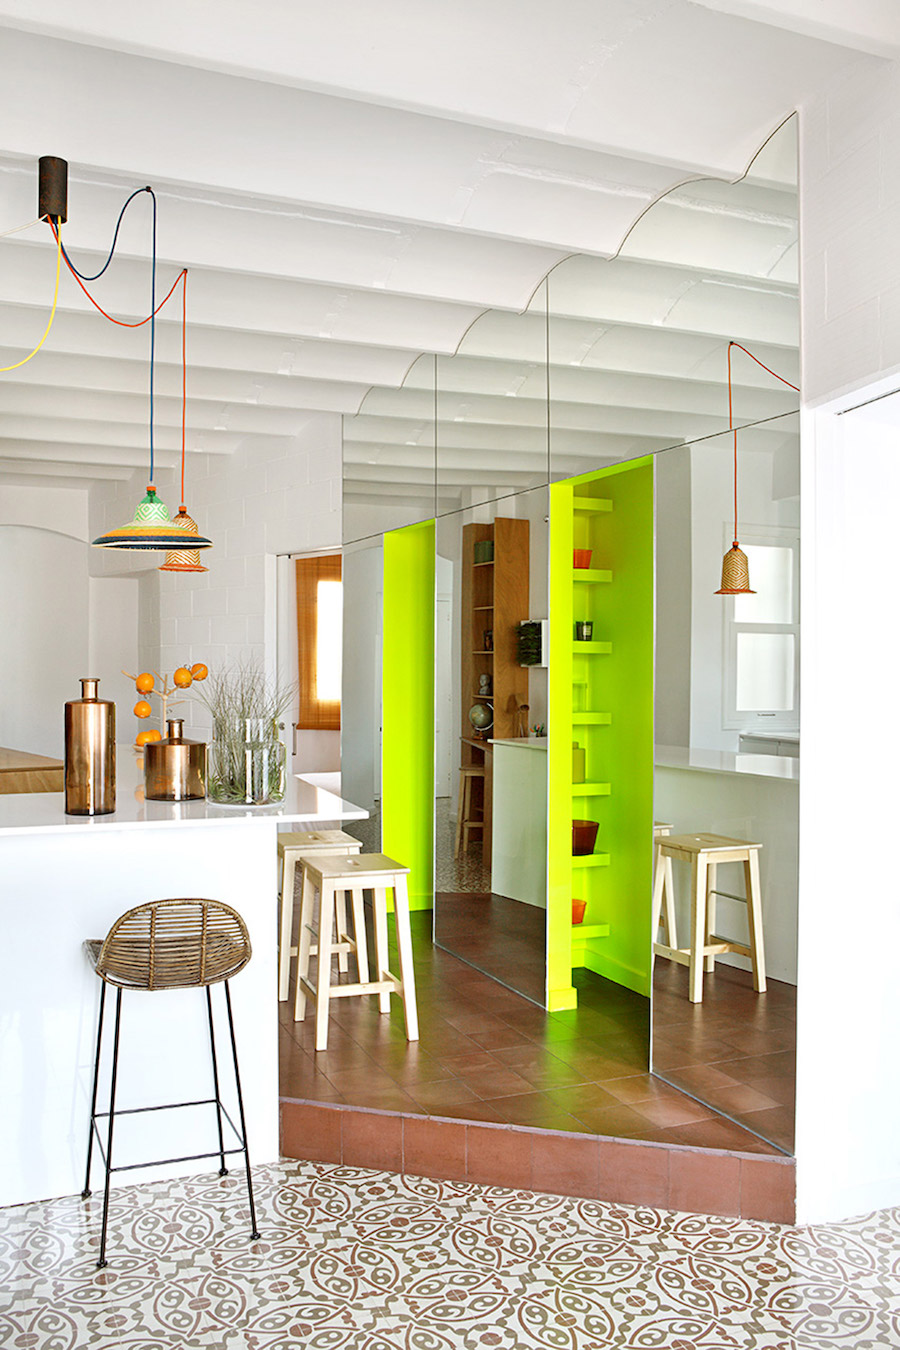 Neon accent wall with shelving inside Barcelona apt